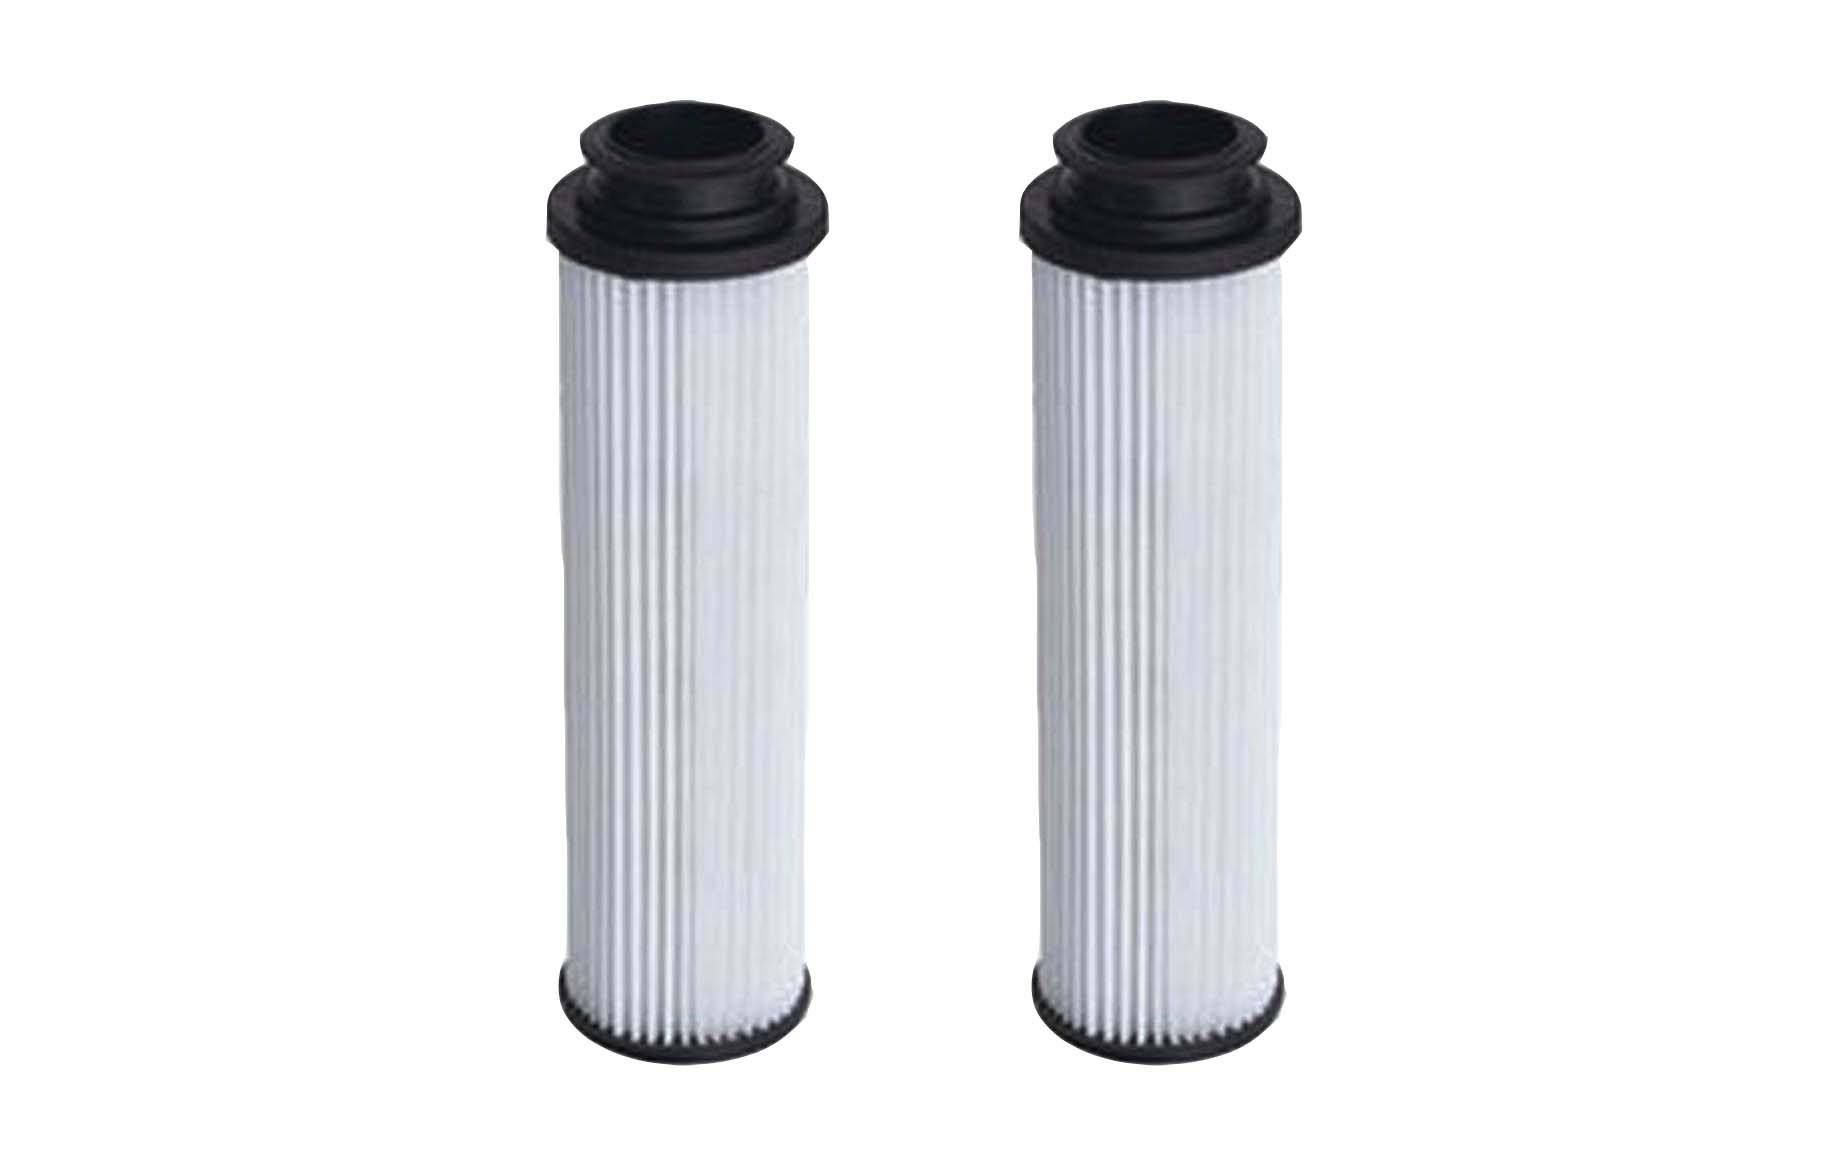 Crucial Vacuum Filter Replacement Parts Compatible With Hoover